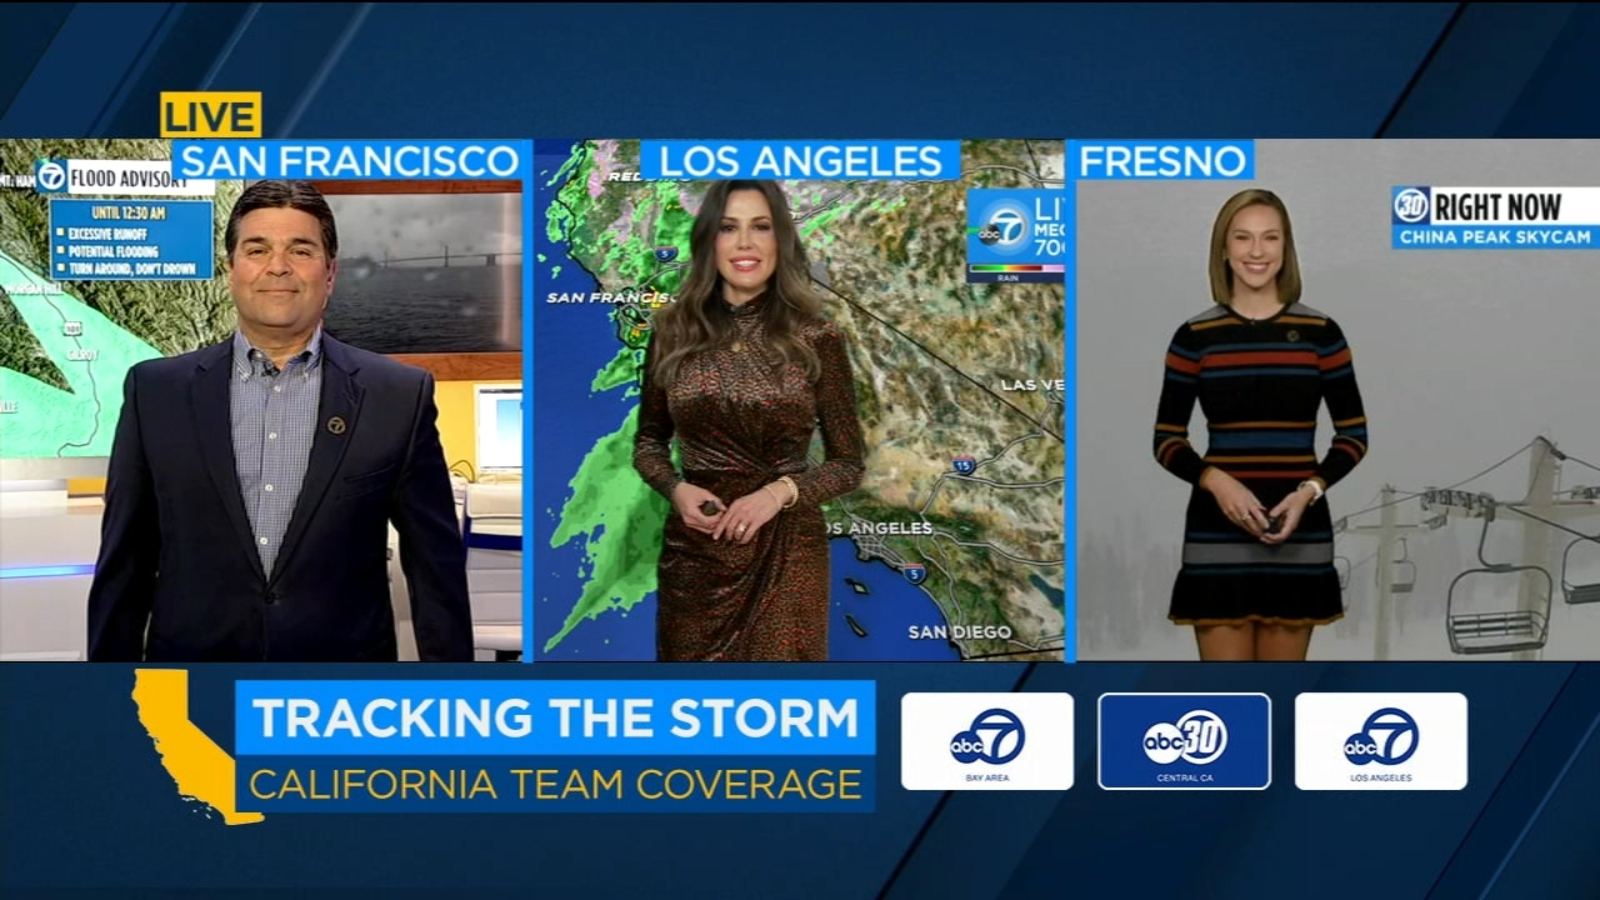 San Francisco Bay Area AccuWeather forecast: Storm continues today, drier beginning tomorrow